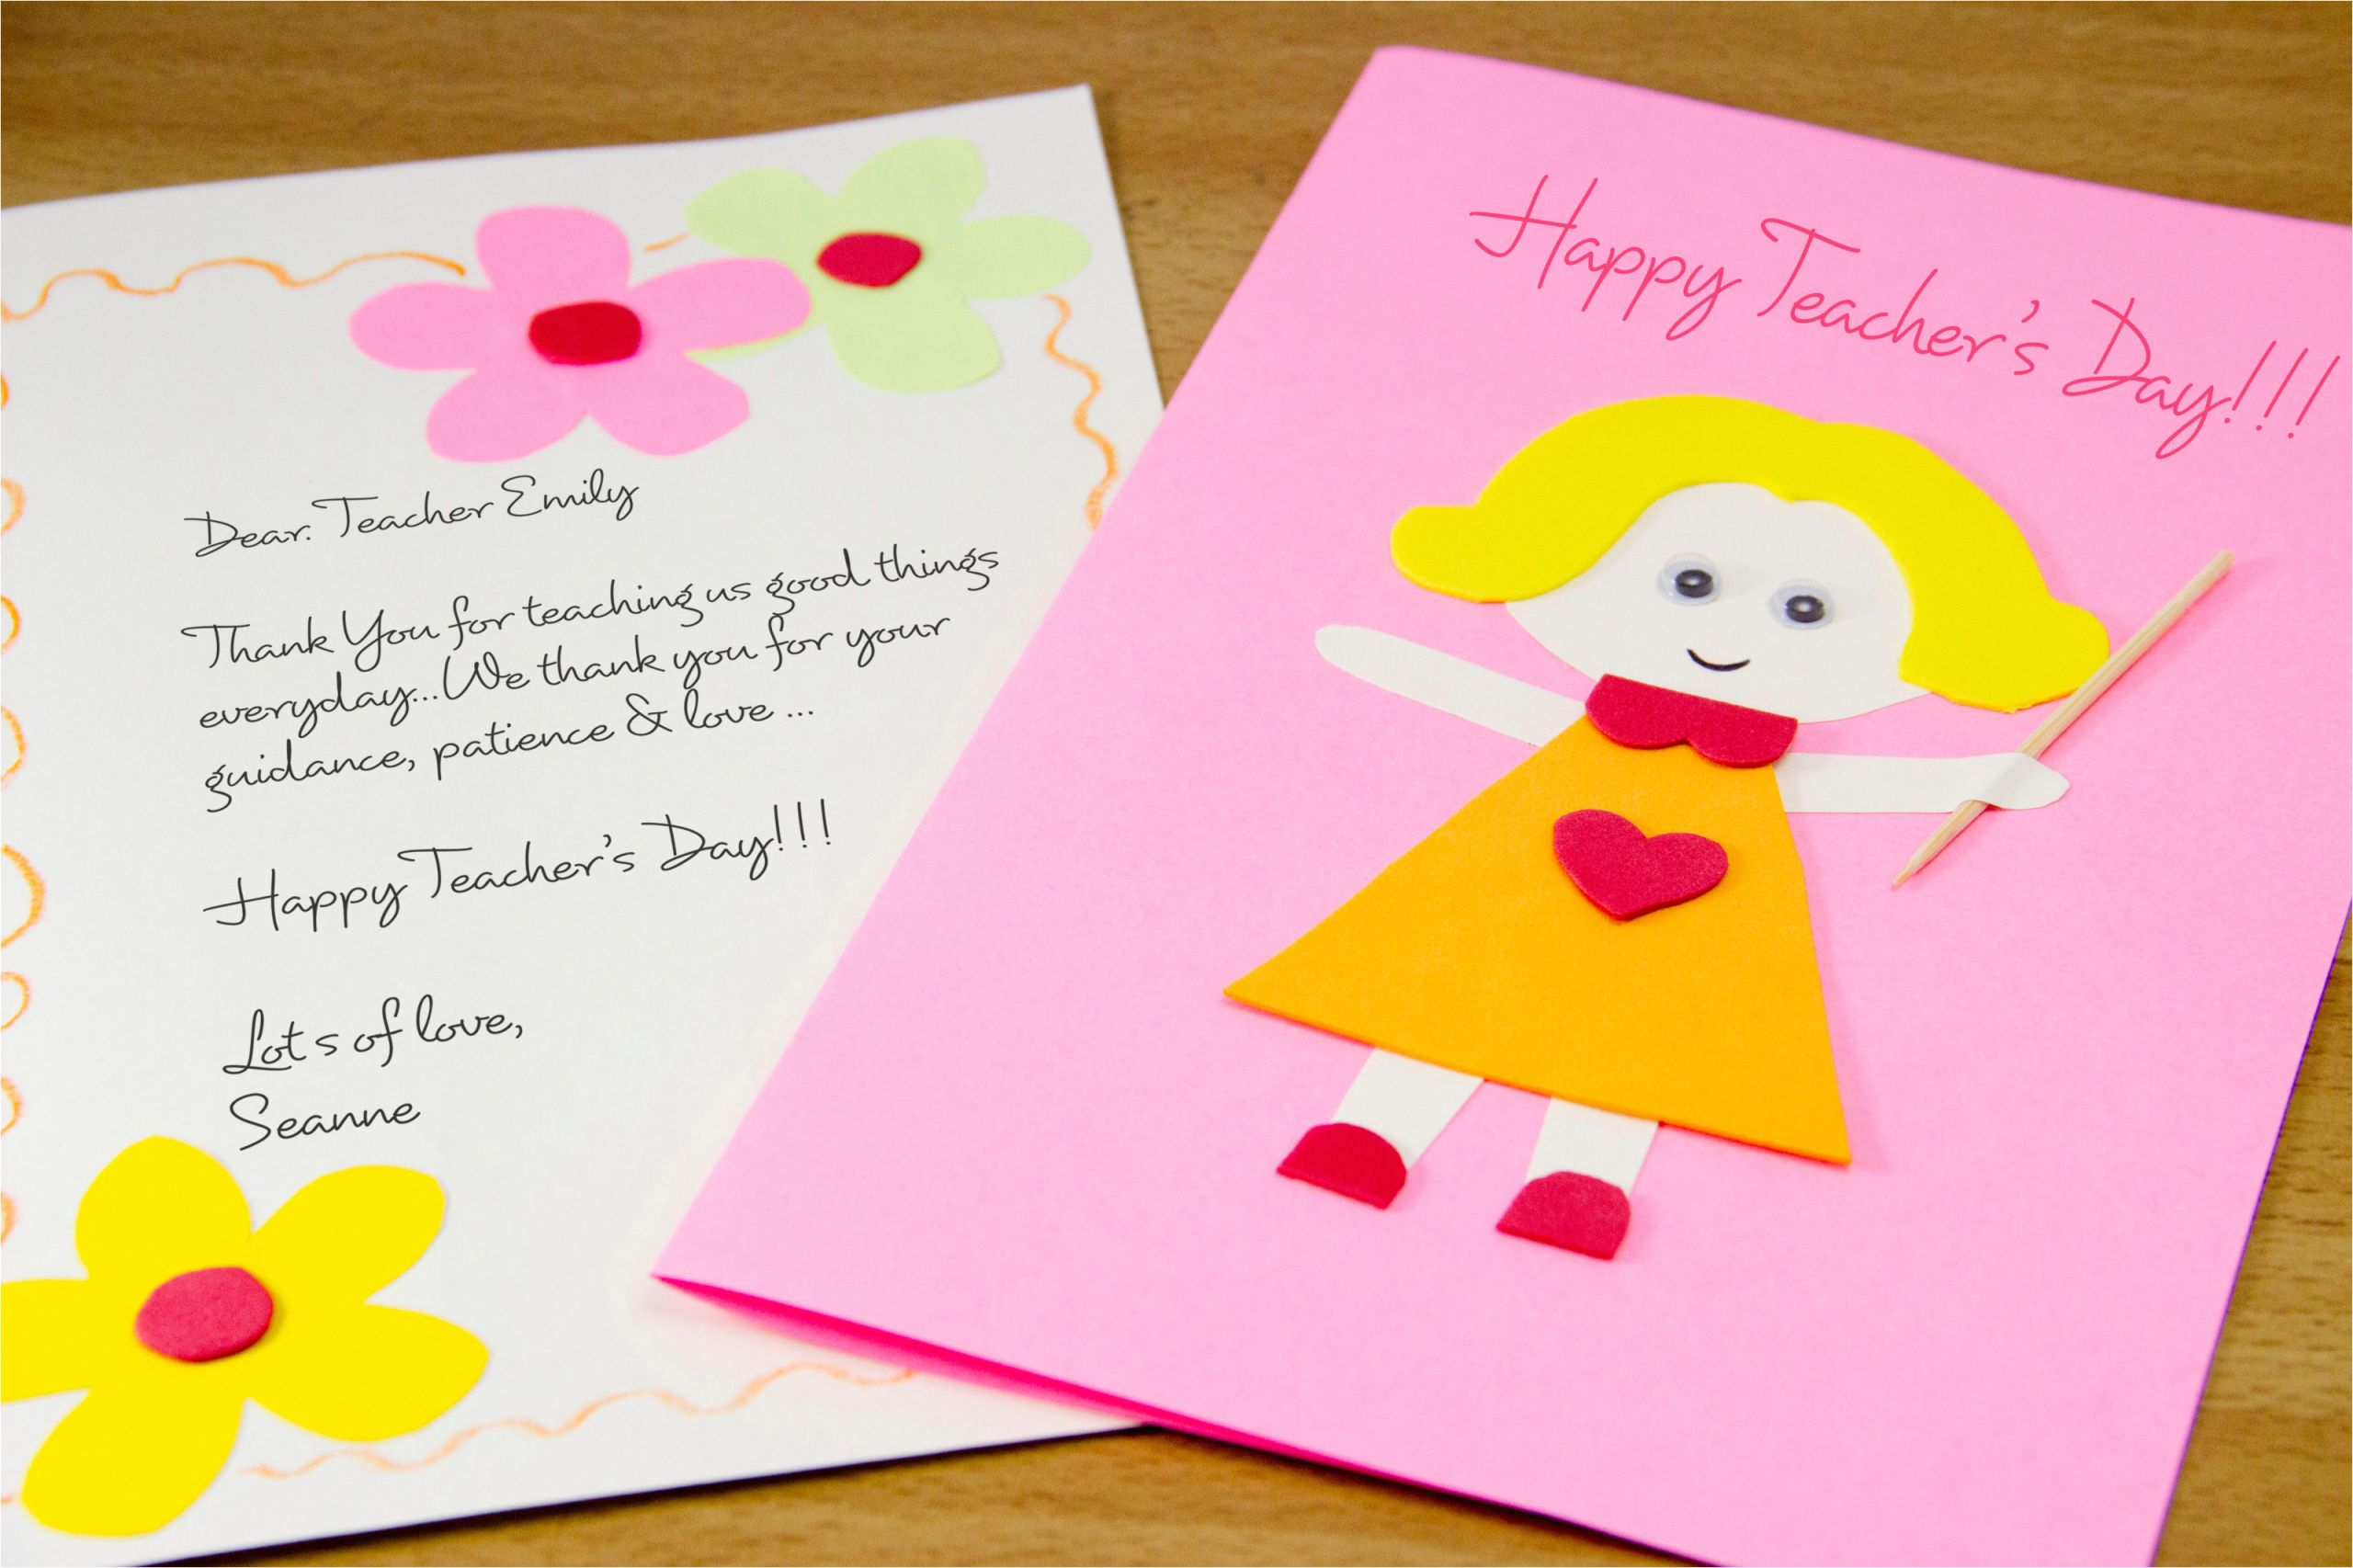 Teachers Day Par Greeting Card How to Make A Homemade Teacher S Day Card 7 Steps with